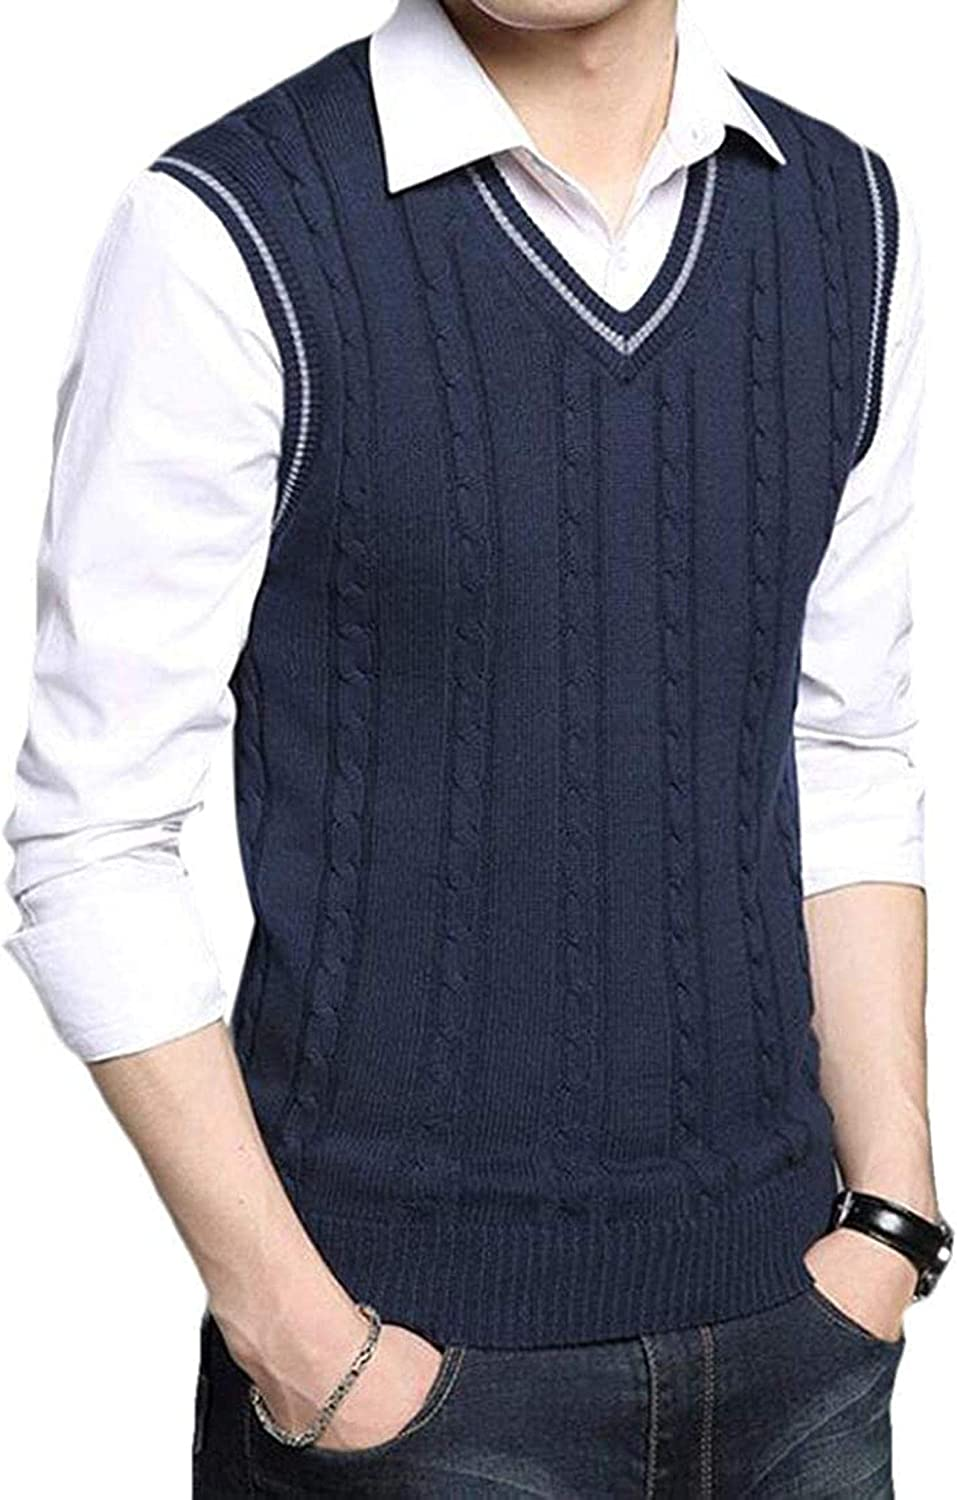 QNMGB Men Knit V-Neck Sweater Solid Color Casual Slim Fit Pullover Sweater Vest,Navy Blue,Small